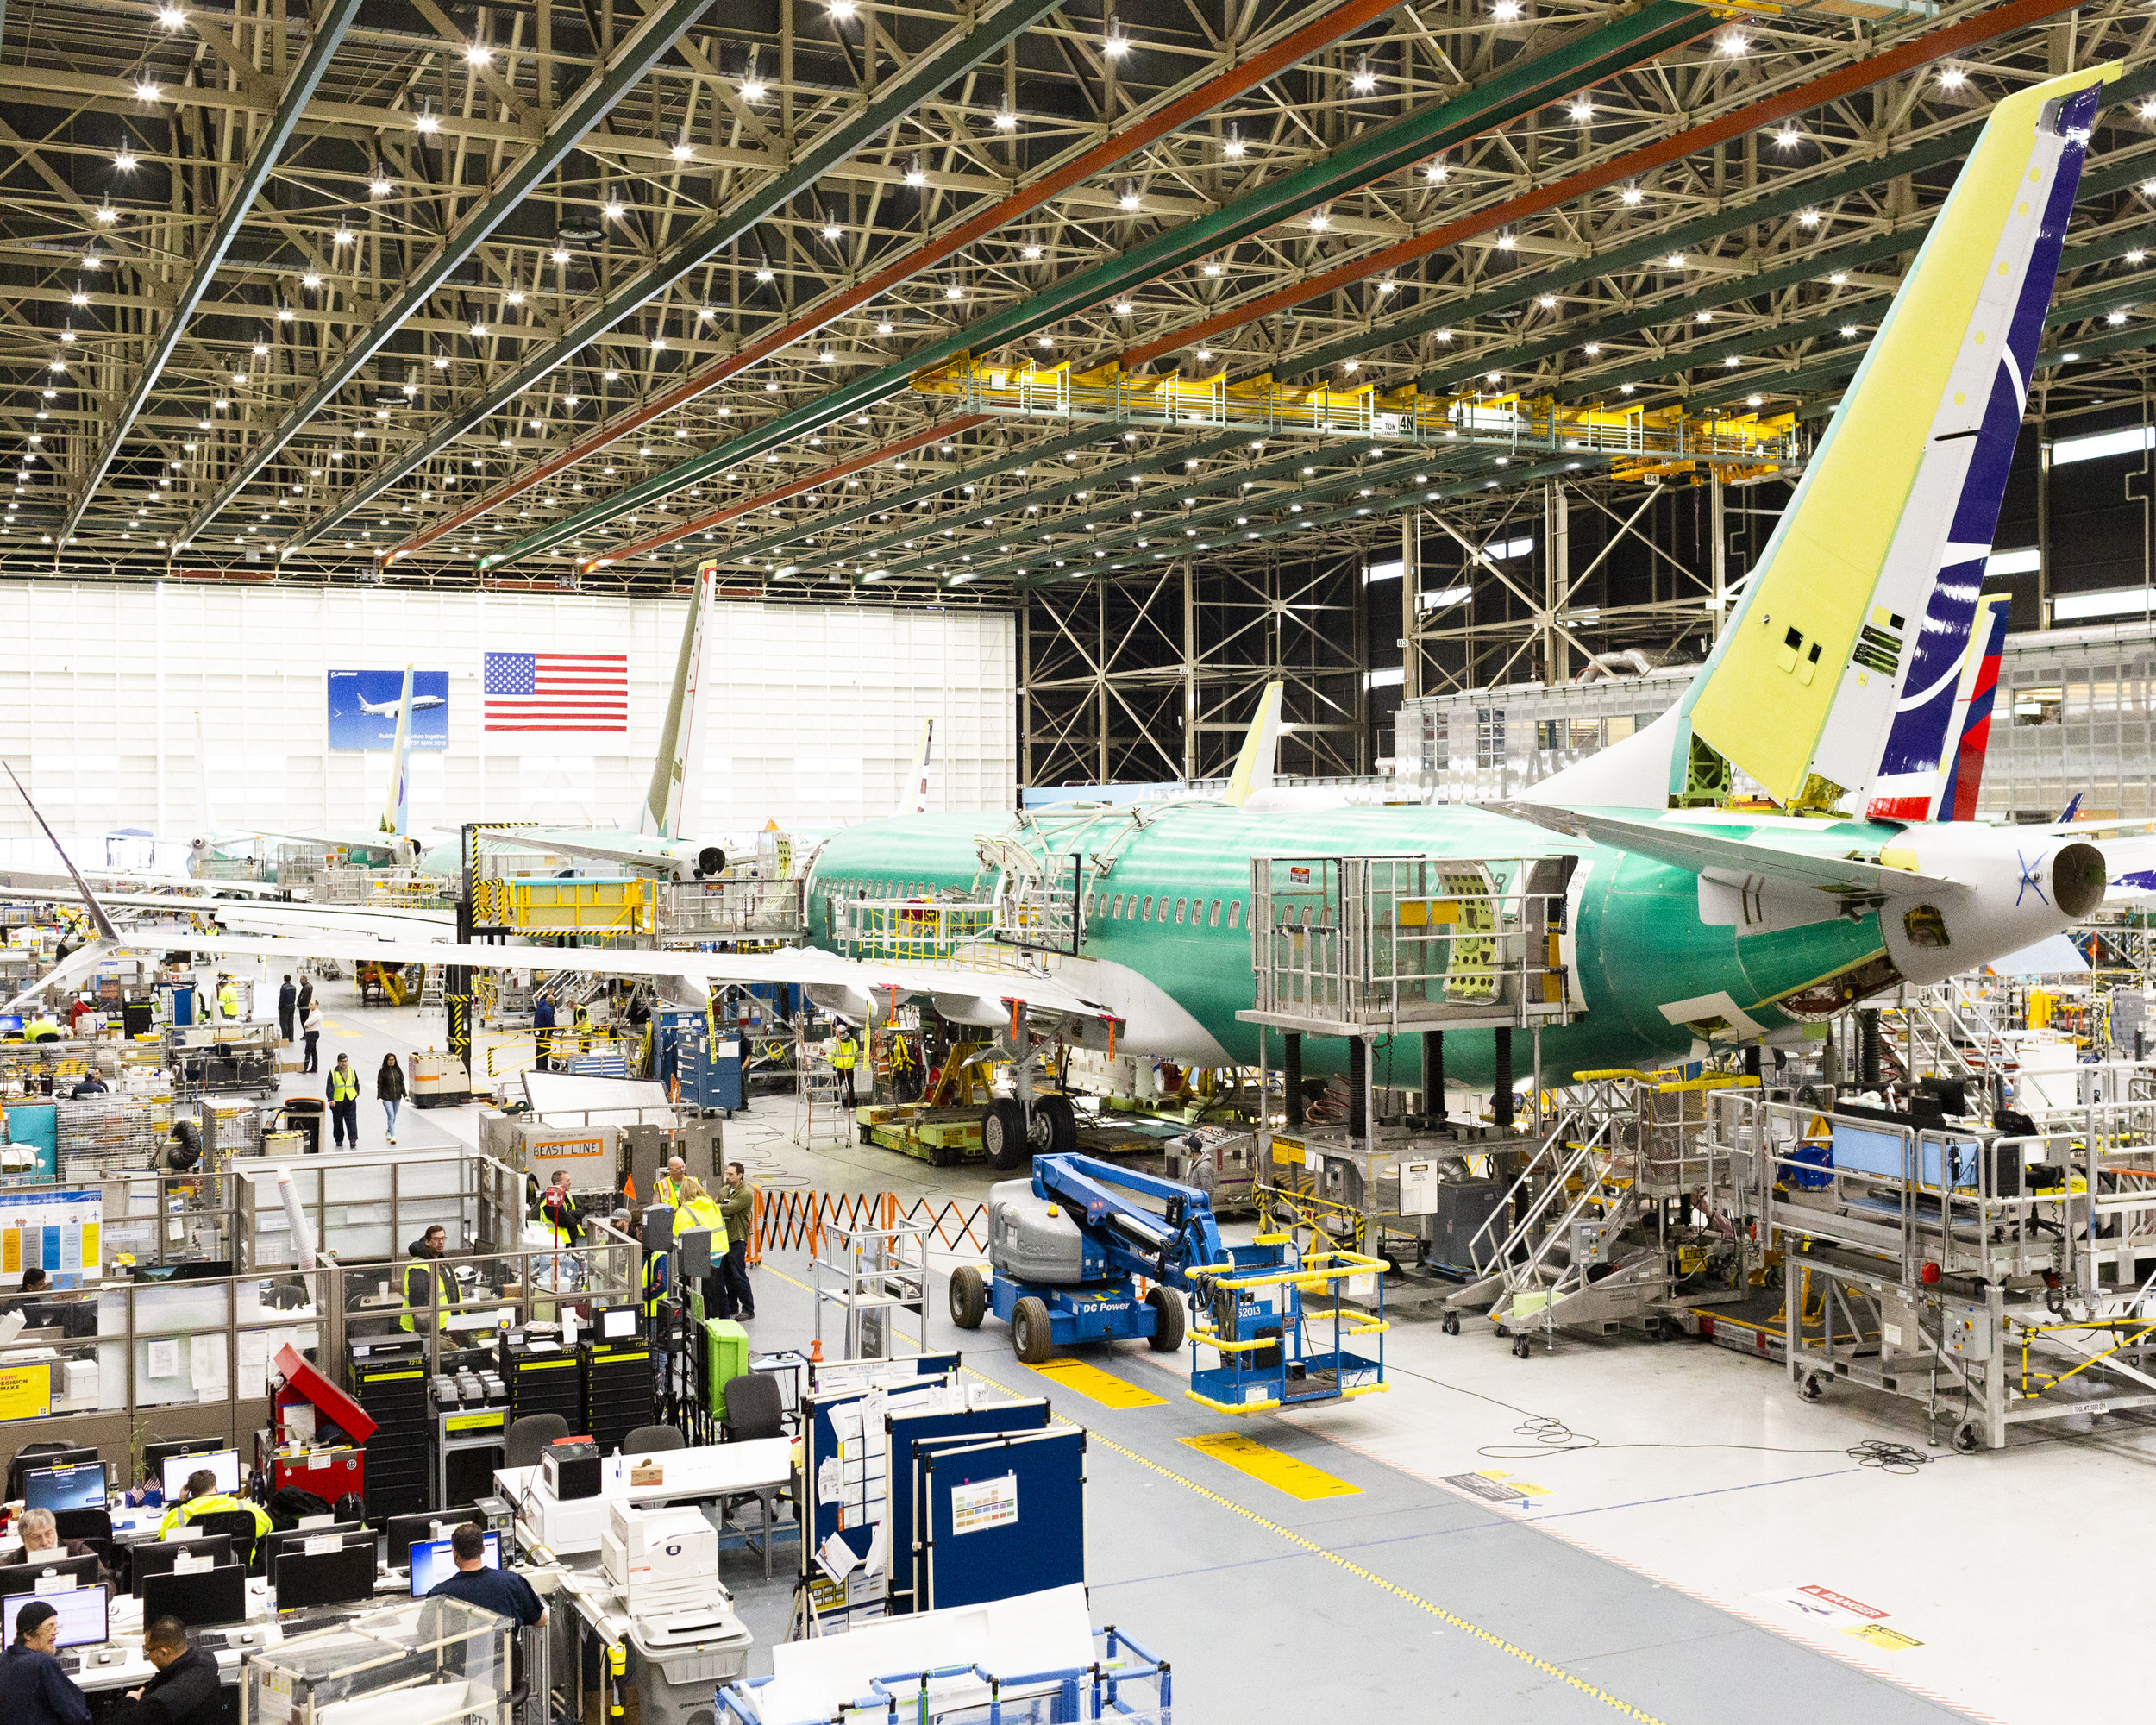 Boeing 737 MAX Assembly Plant for NPR